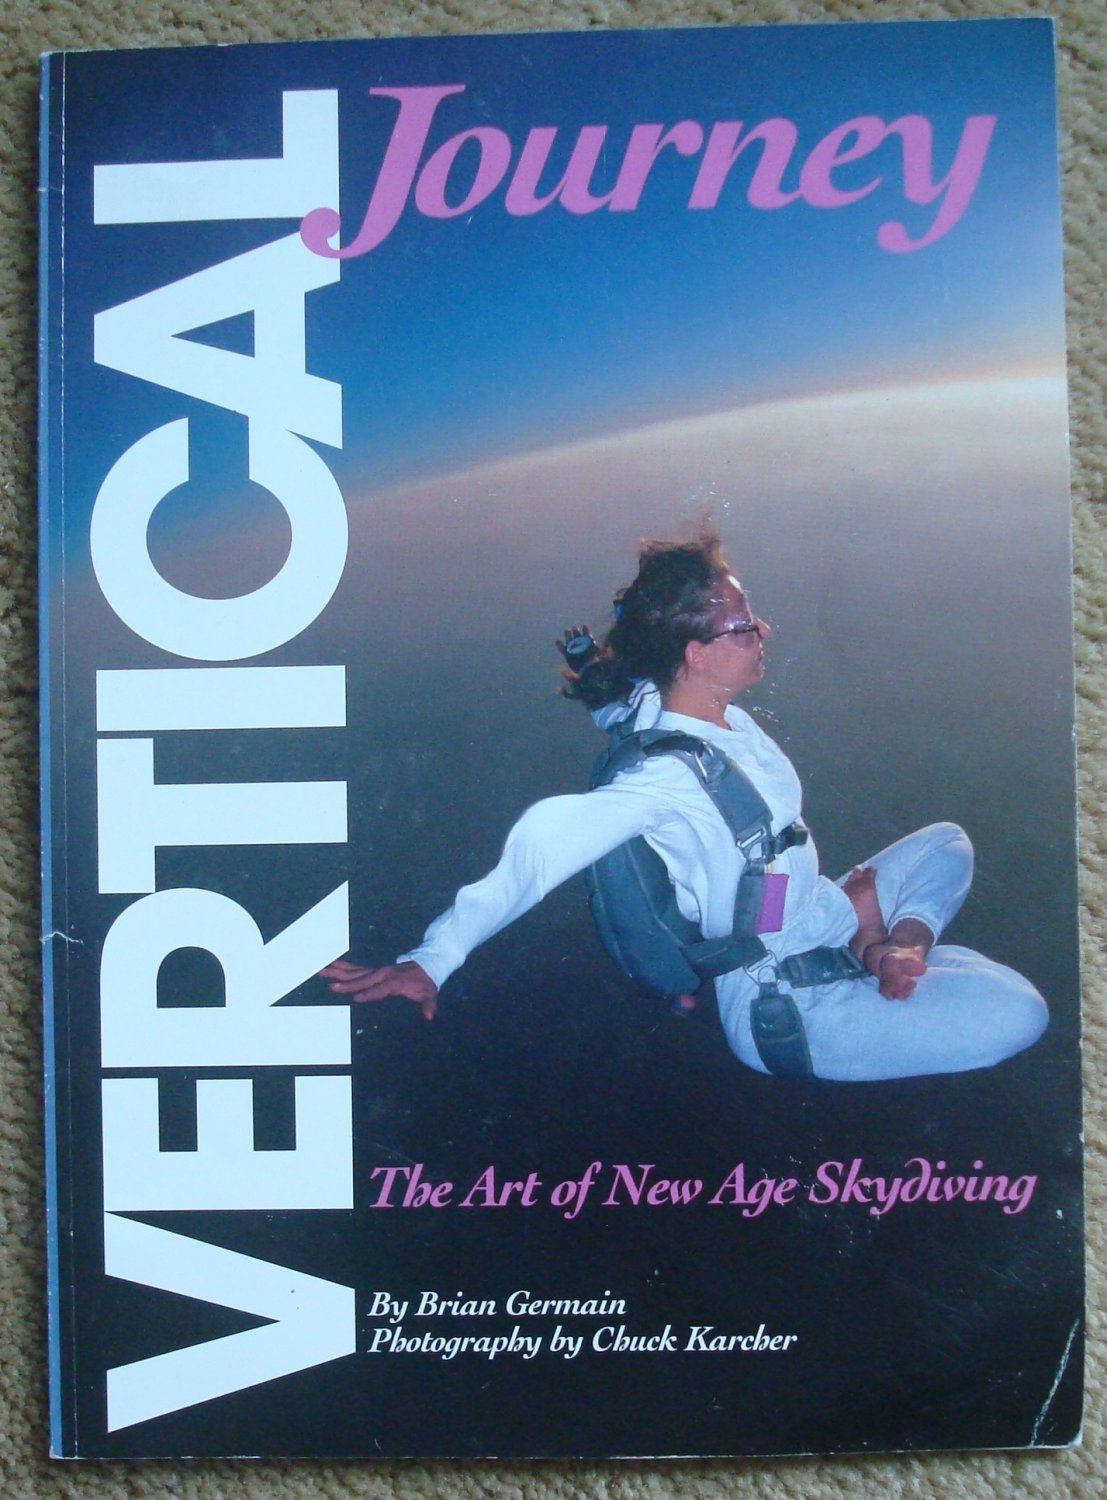 Vertical Journey: The Art of New Age Skydiving